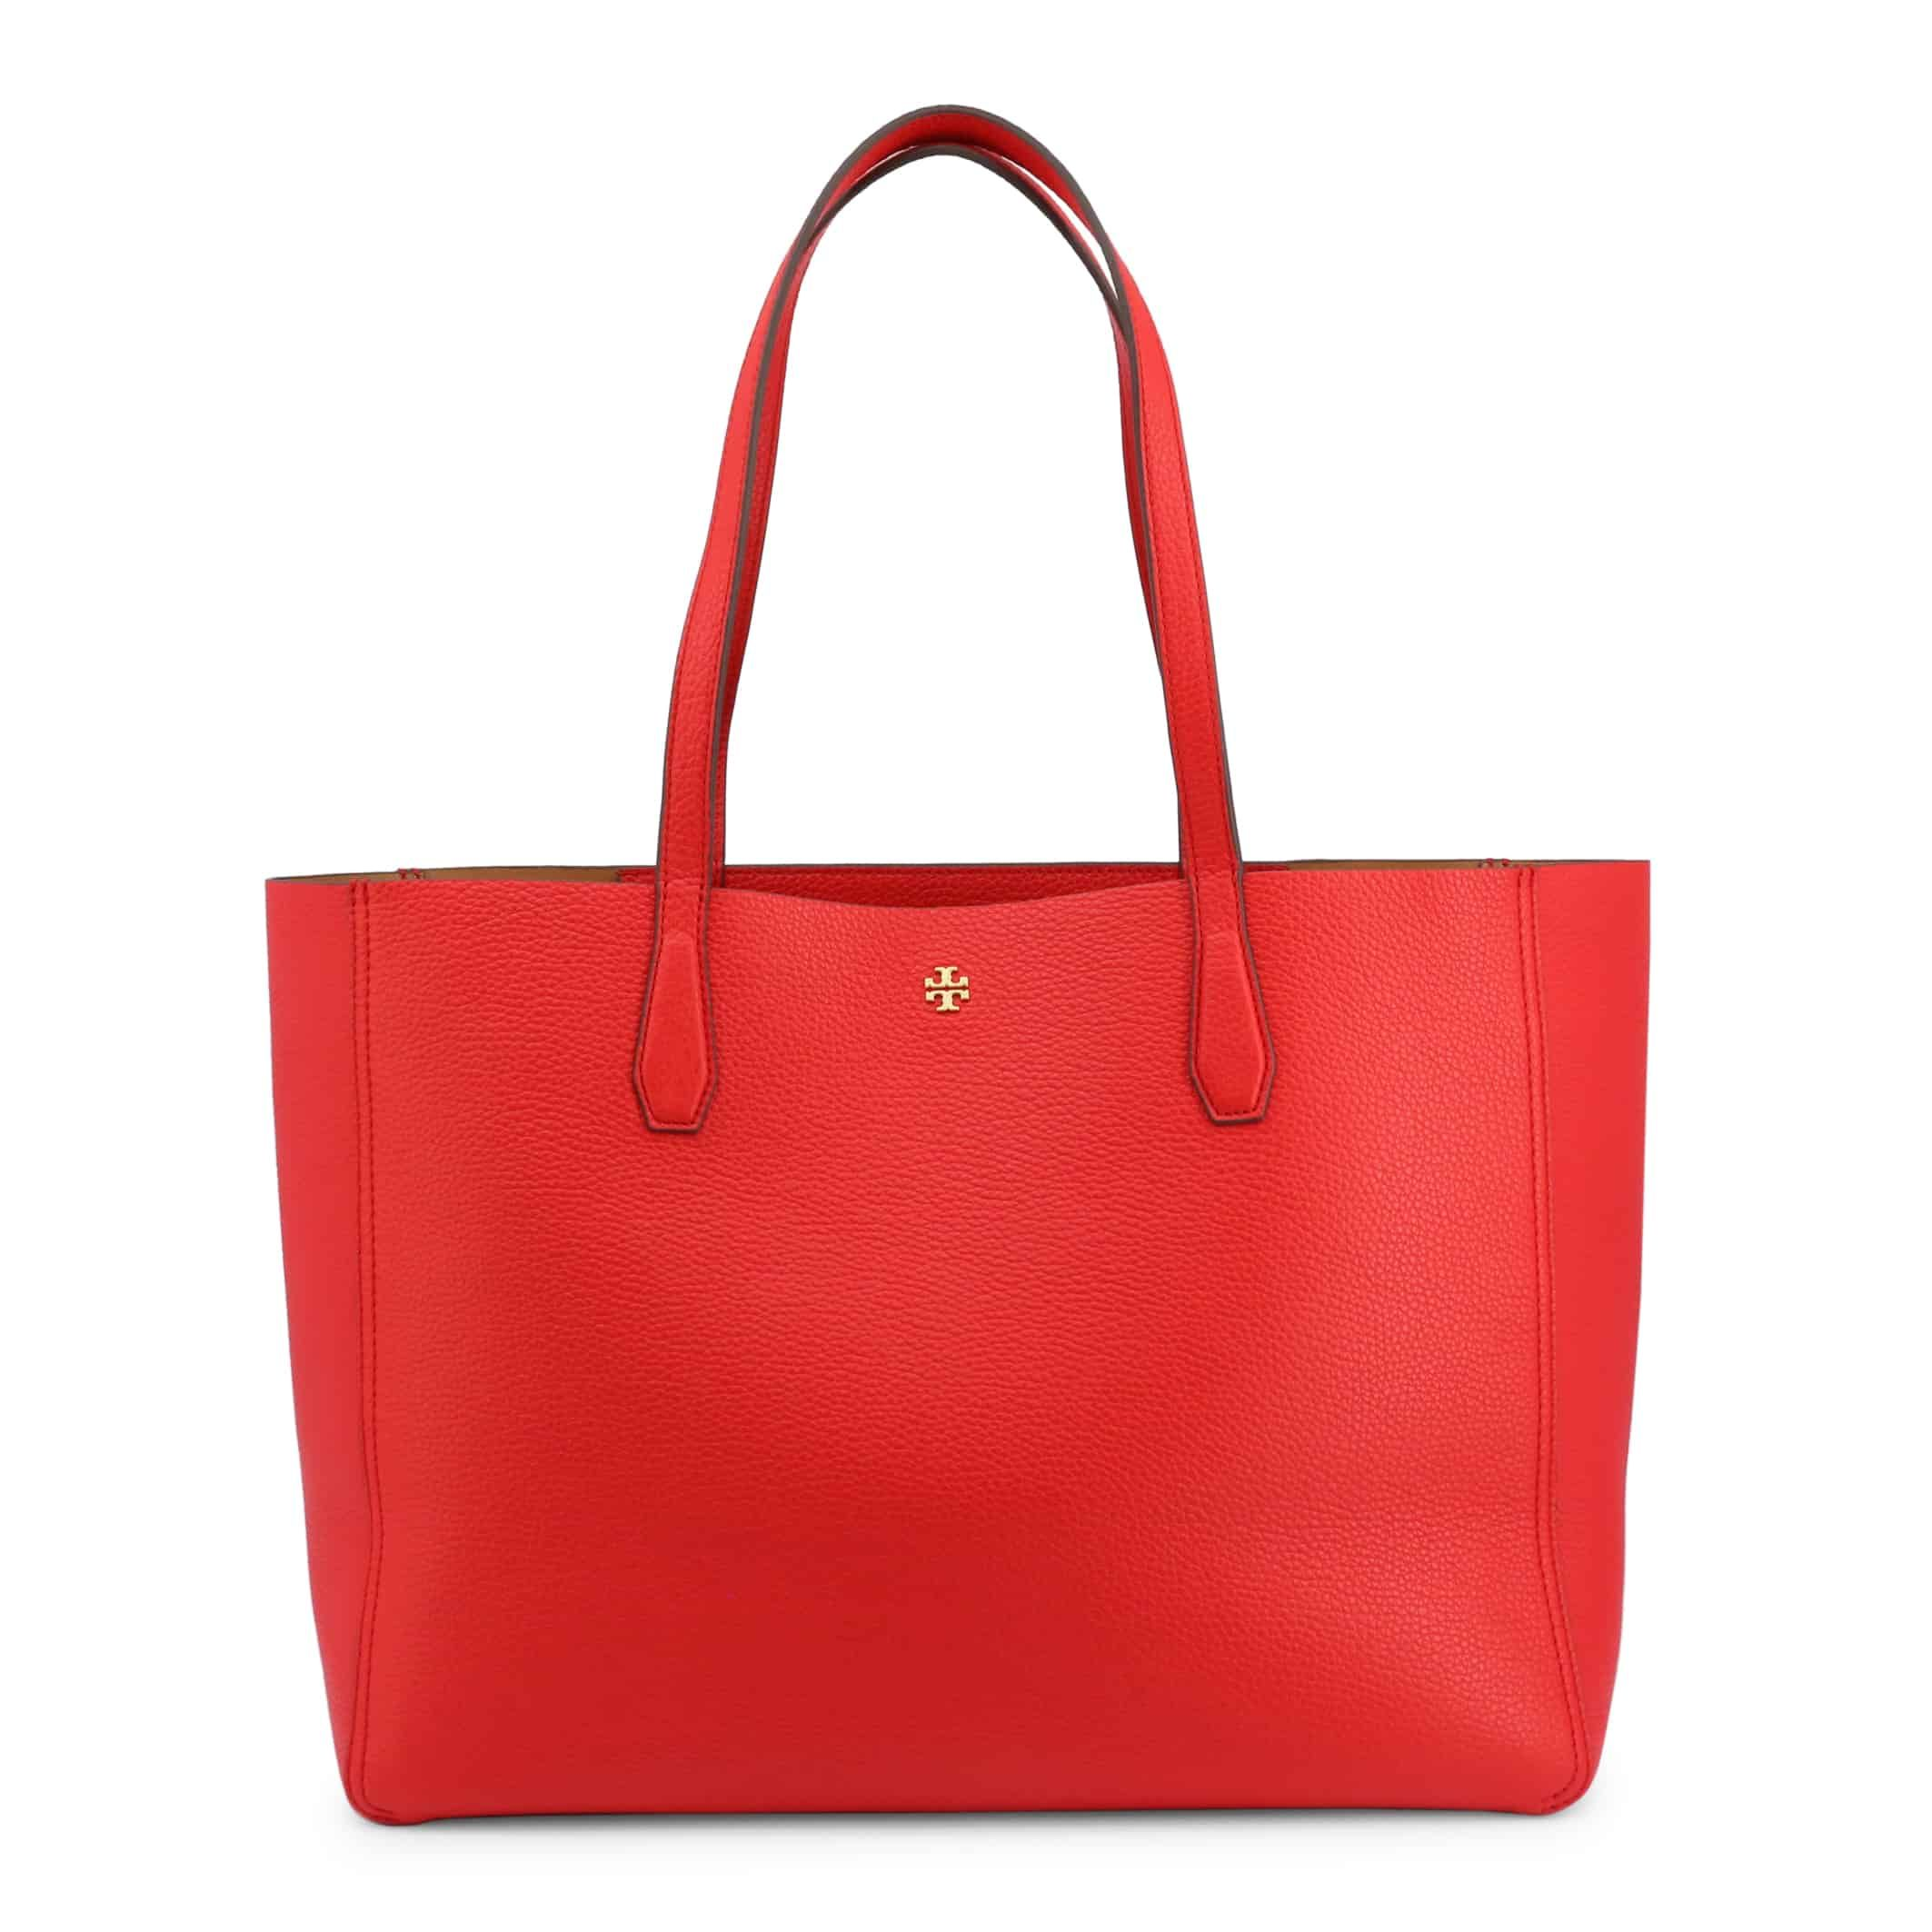 Tory Burch – 67282 – Rouge